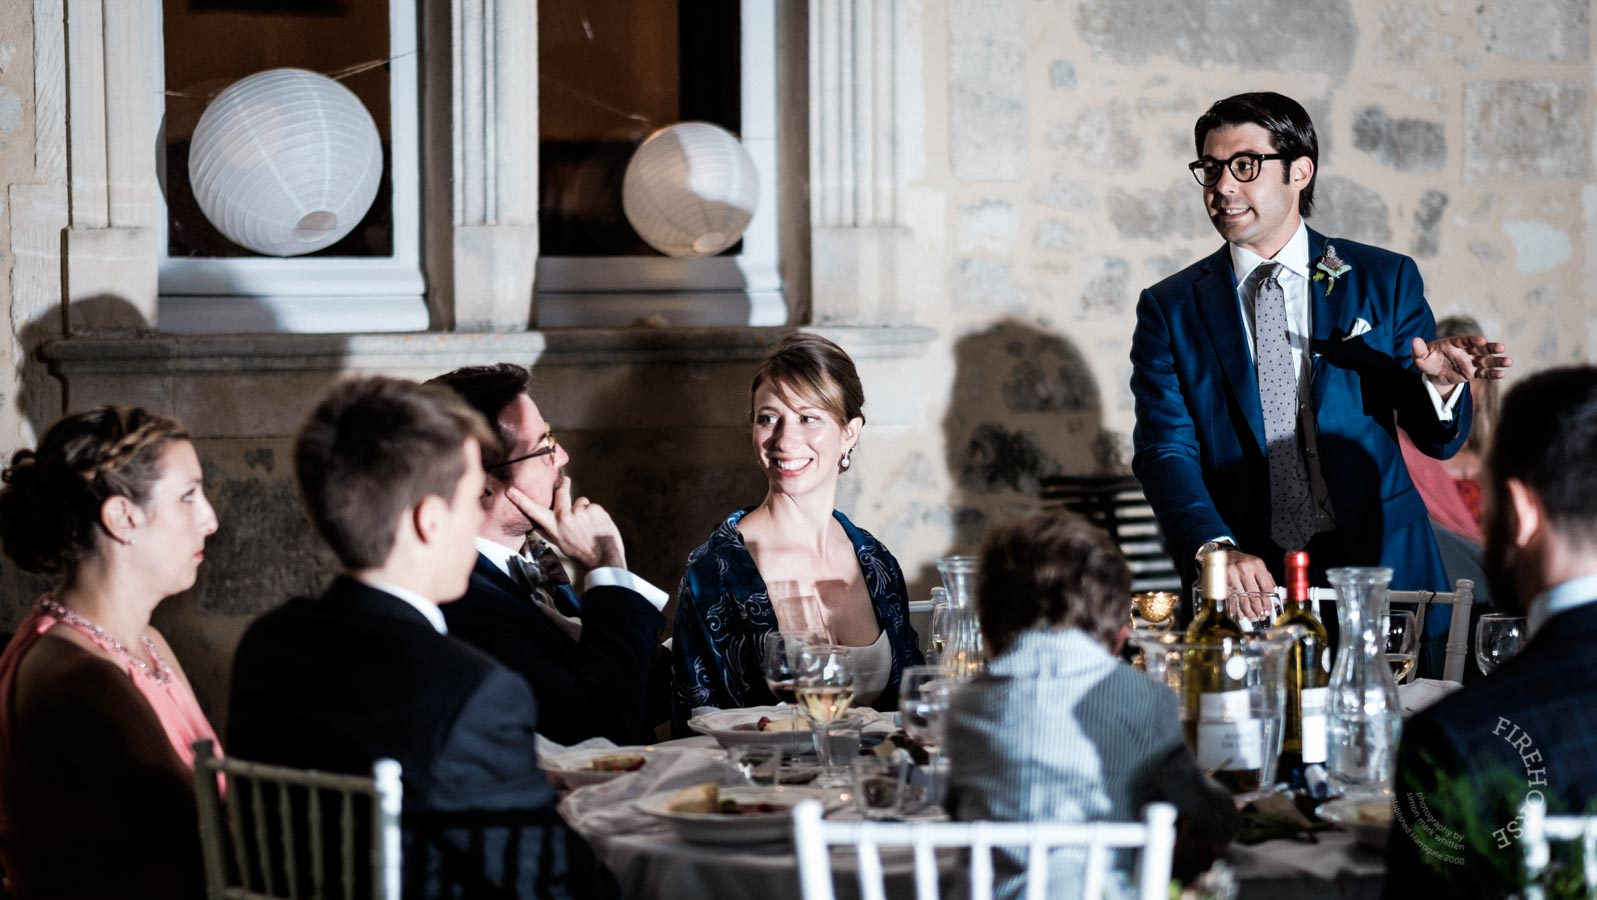 Lot-et-Garonne-Wedding-Photography-324